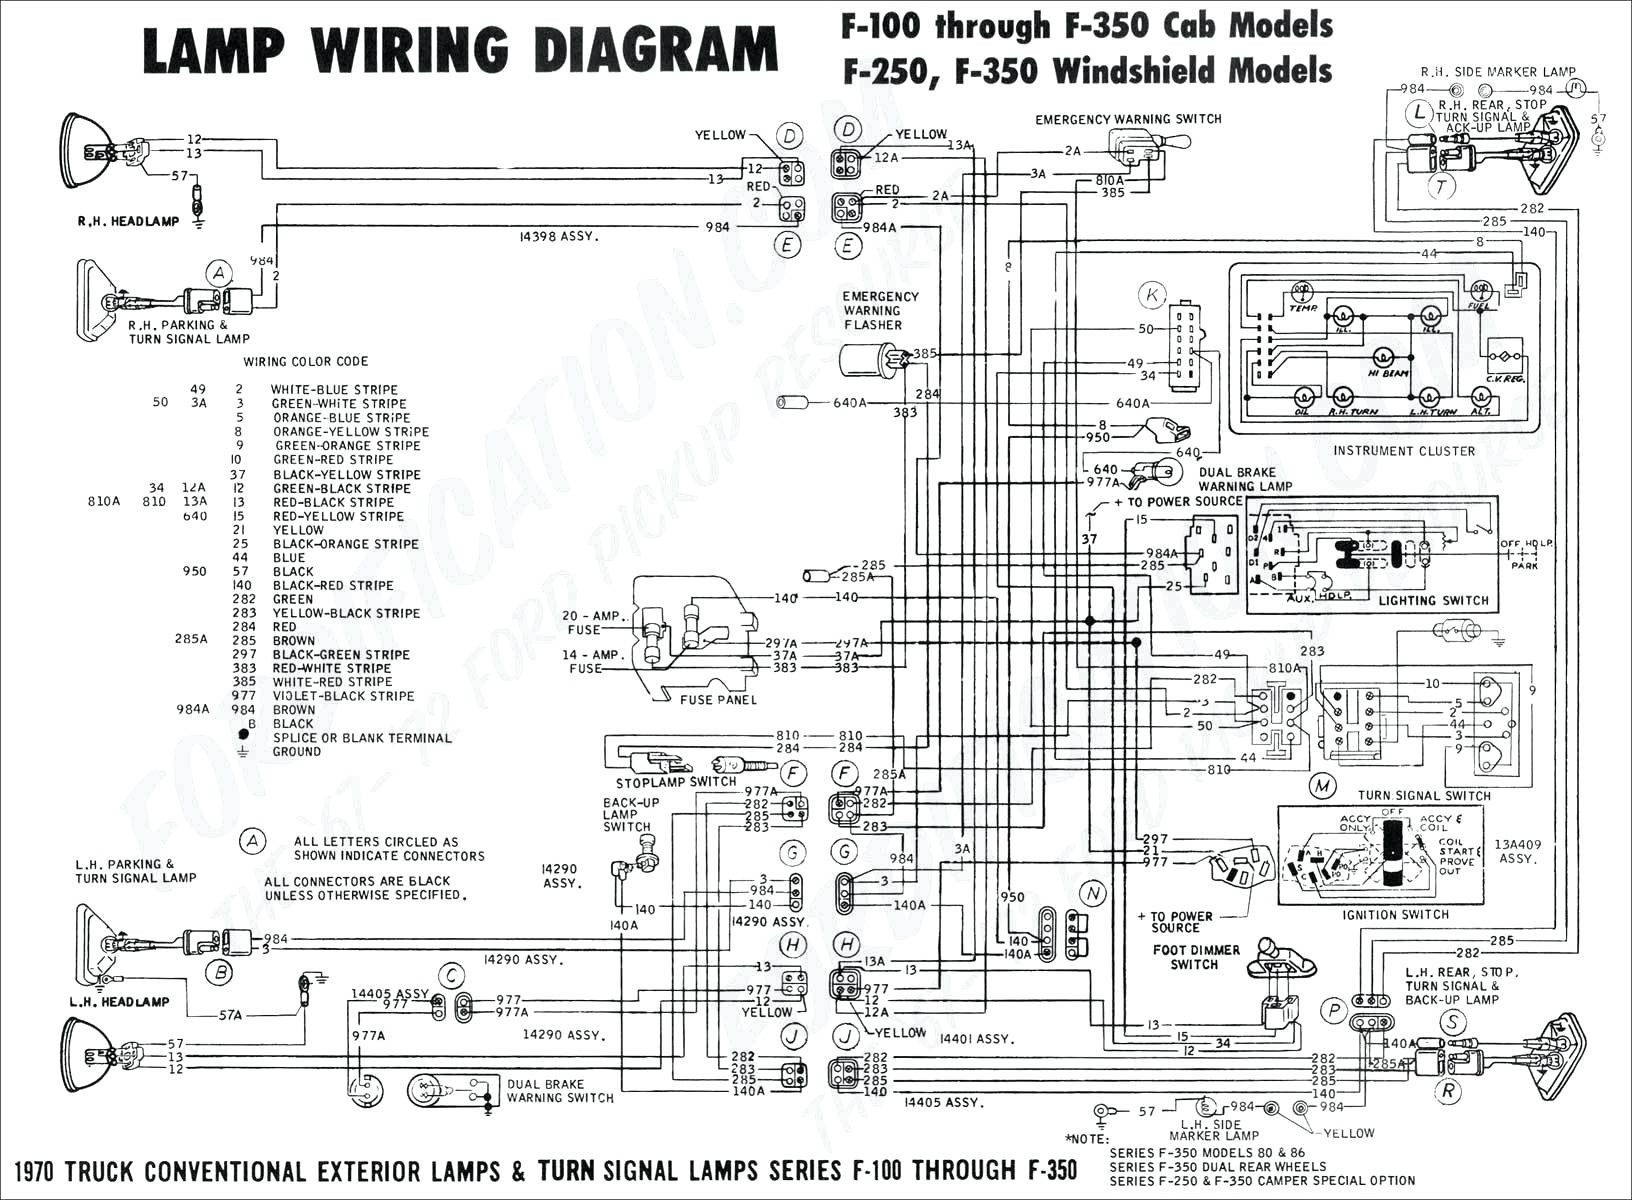 2004 Honda Accord Wiring Diagram Honda Accord Fuse Diagram Http Wwwjustanswer Honda 4kxd6honda Of 2004 Honda Accord Wiring Diagram